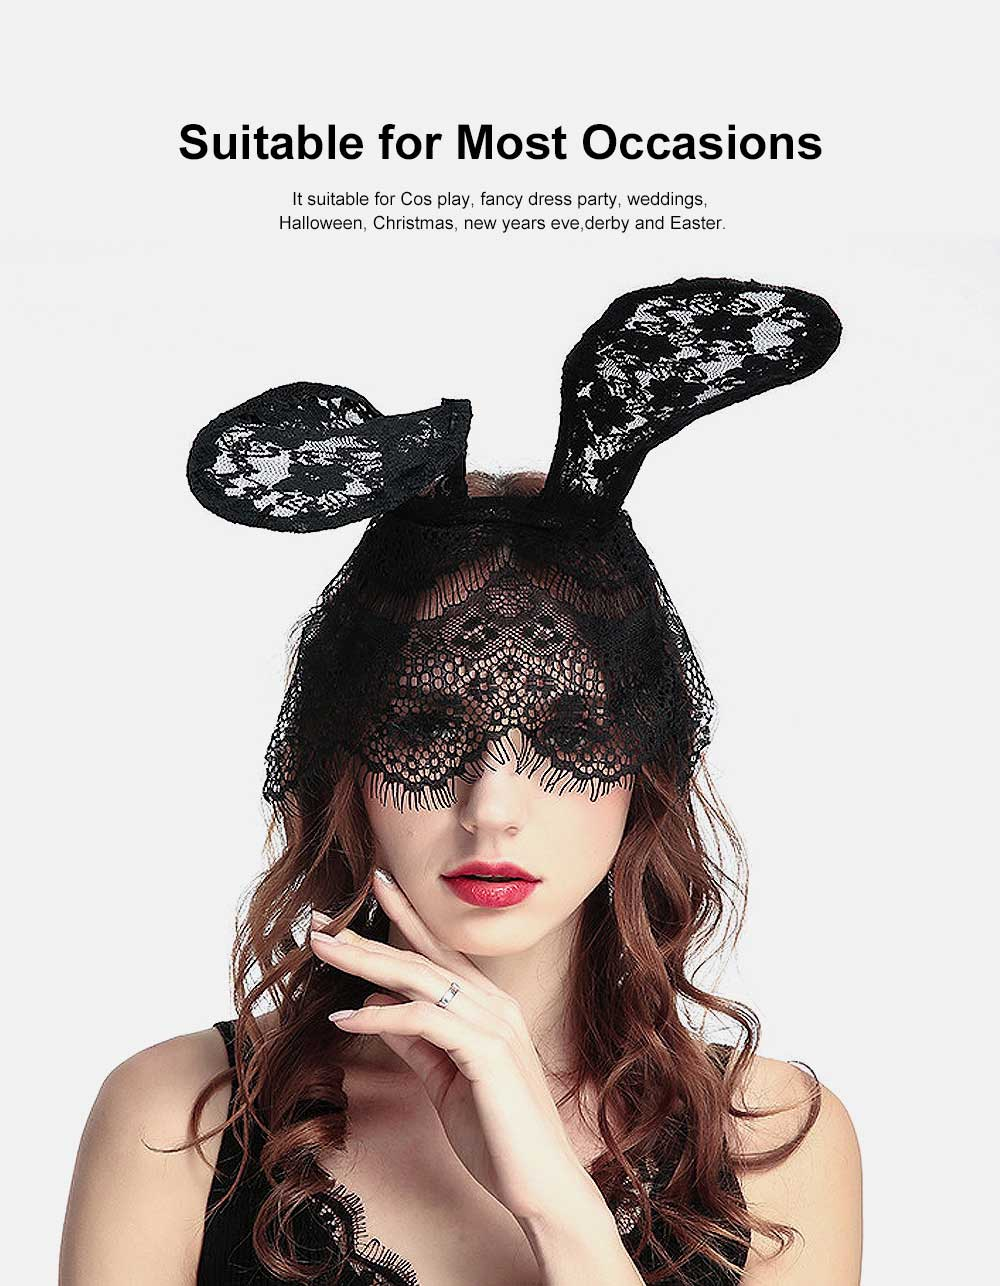 Women Lace Nightclub Party Headwear with Rabbit Ears Design, Headband for Costume Accessory 3